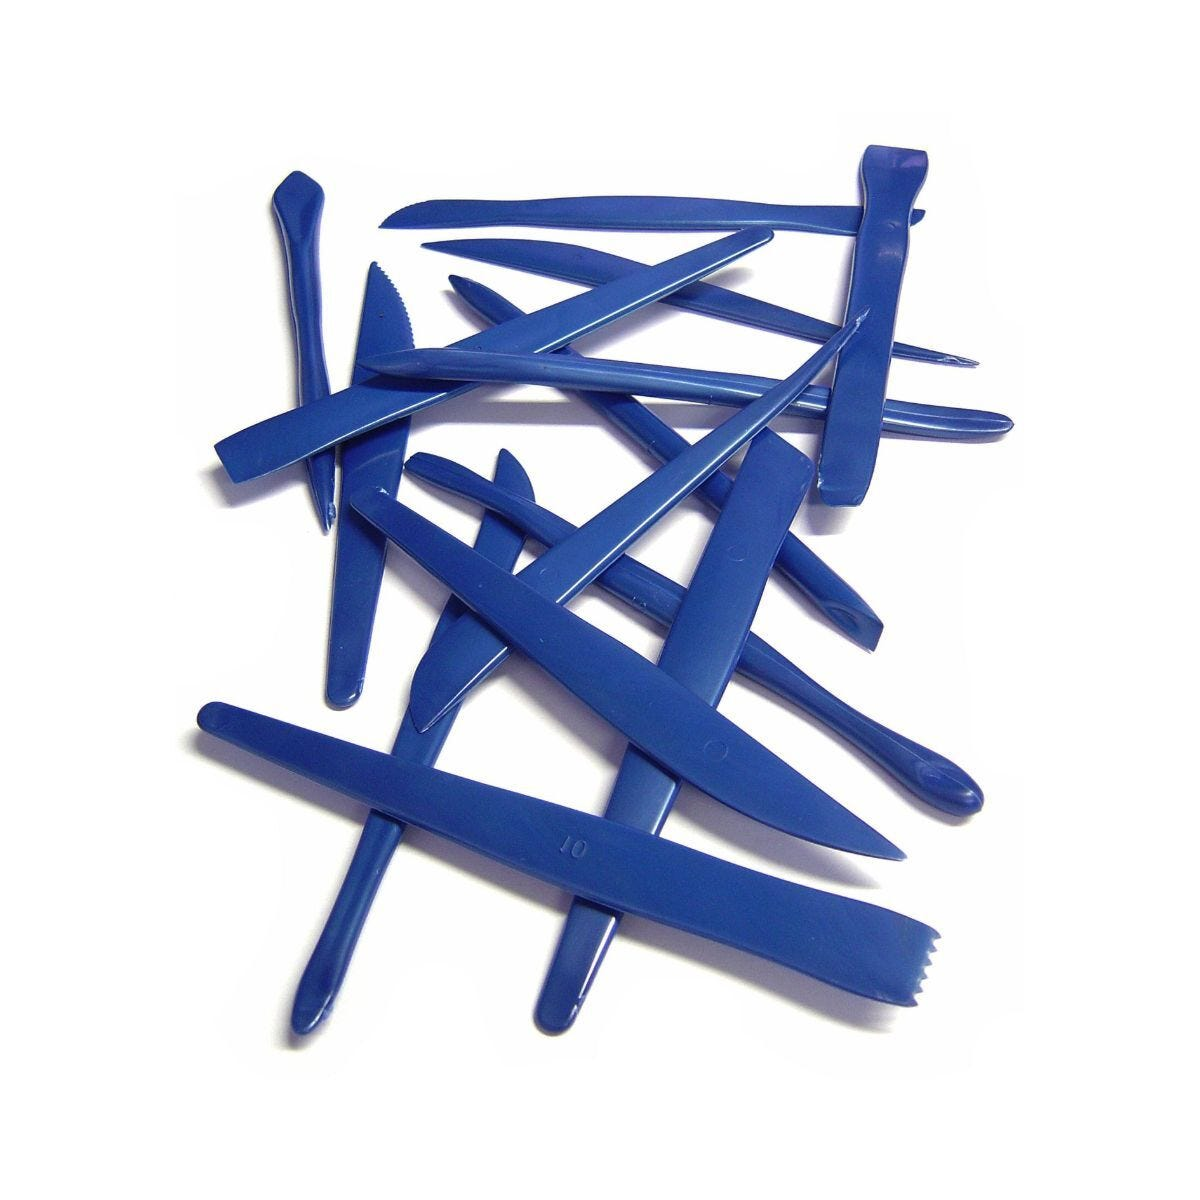 Plastic Modelling Clay Tools Pack of 14